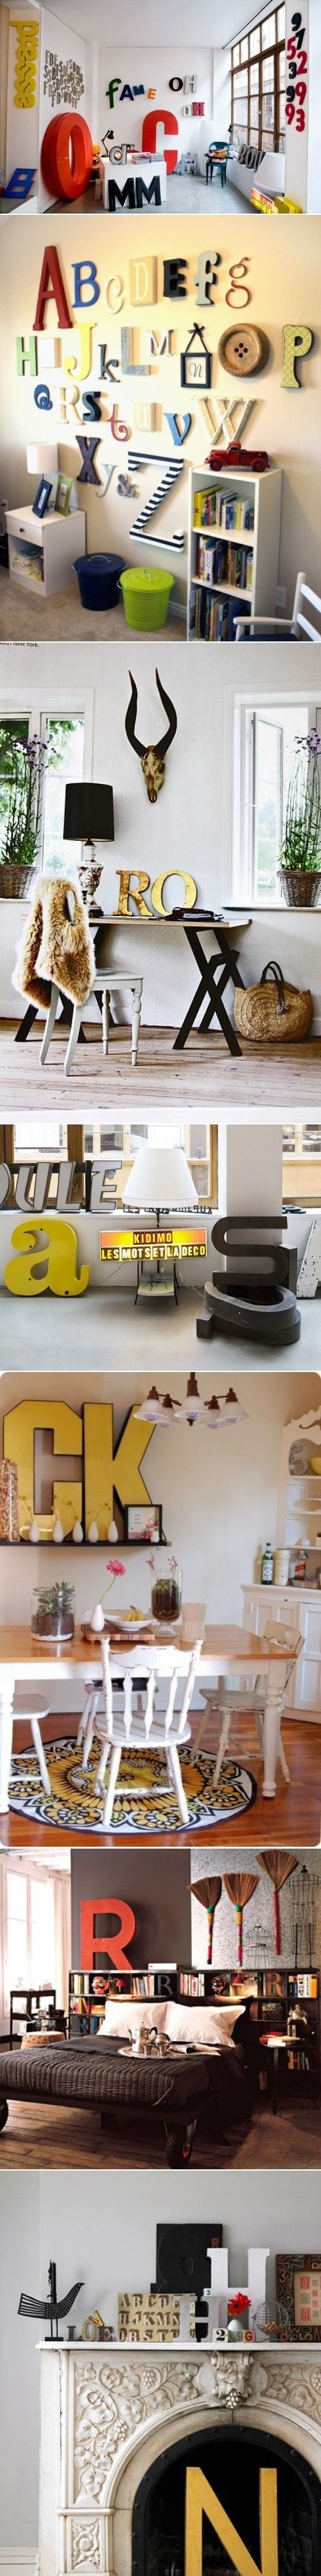 Decorate Your Interior With Letters